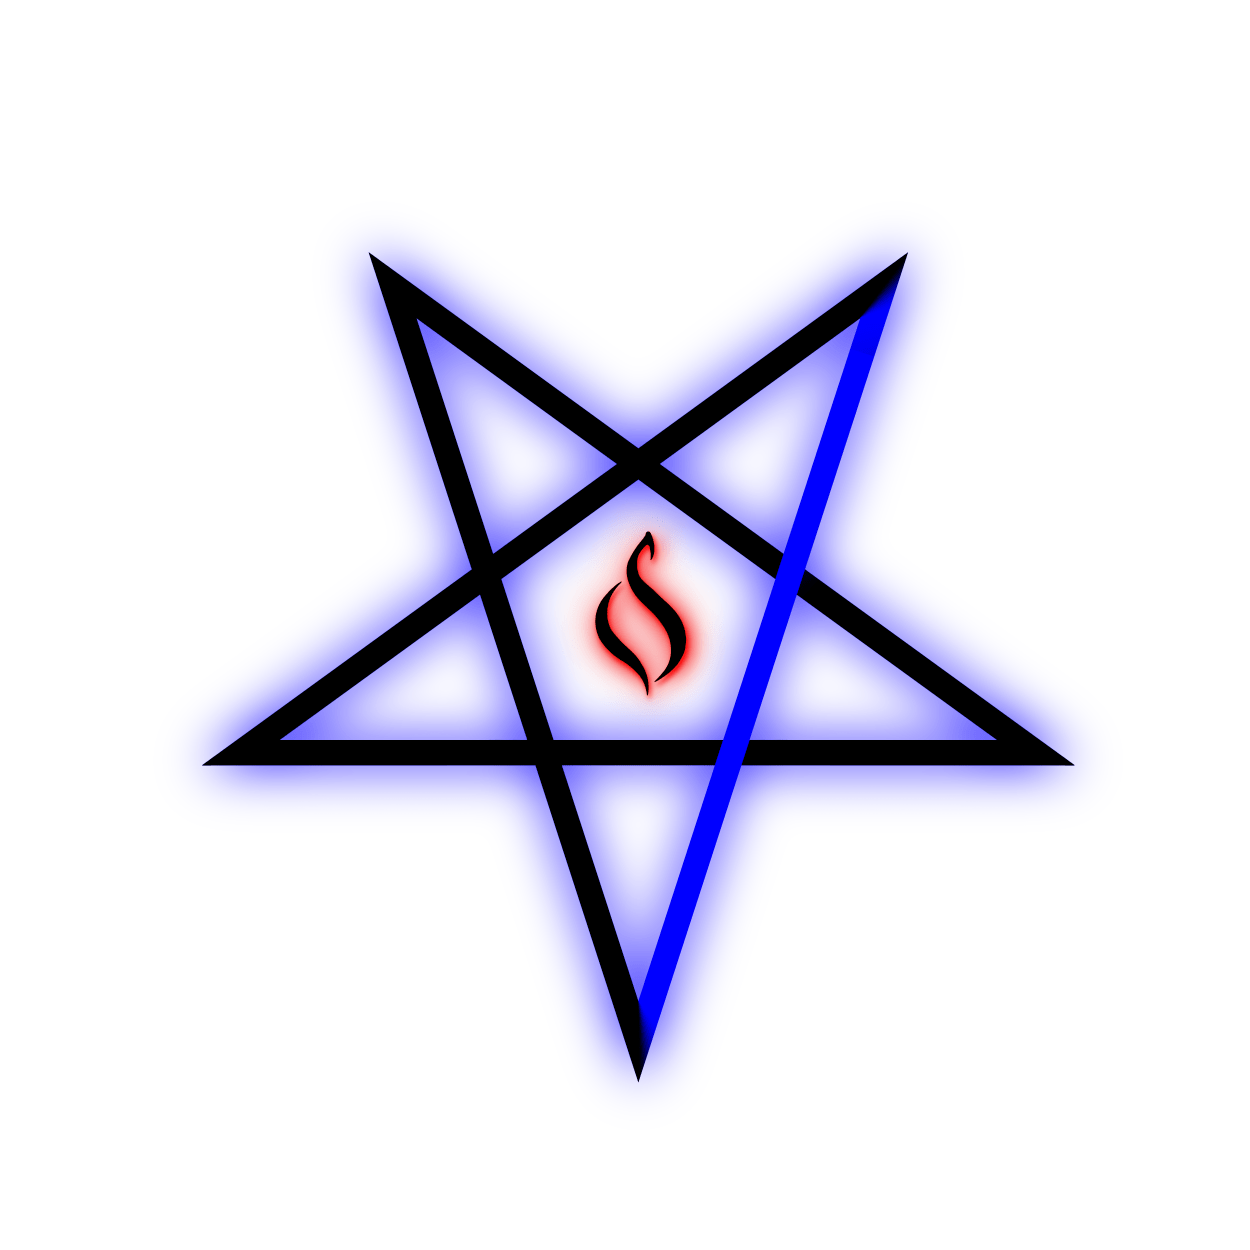 Pentagram Blue Flame